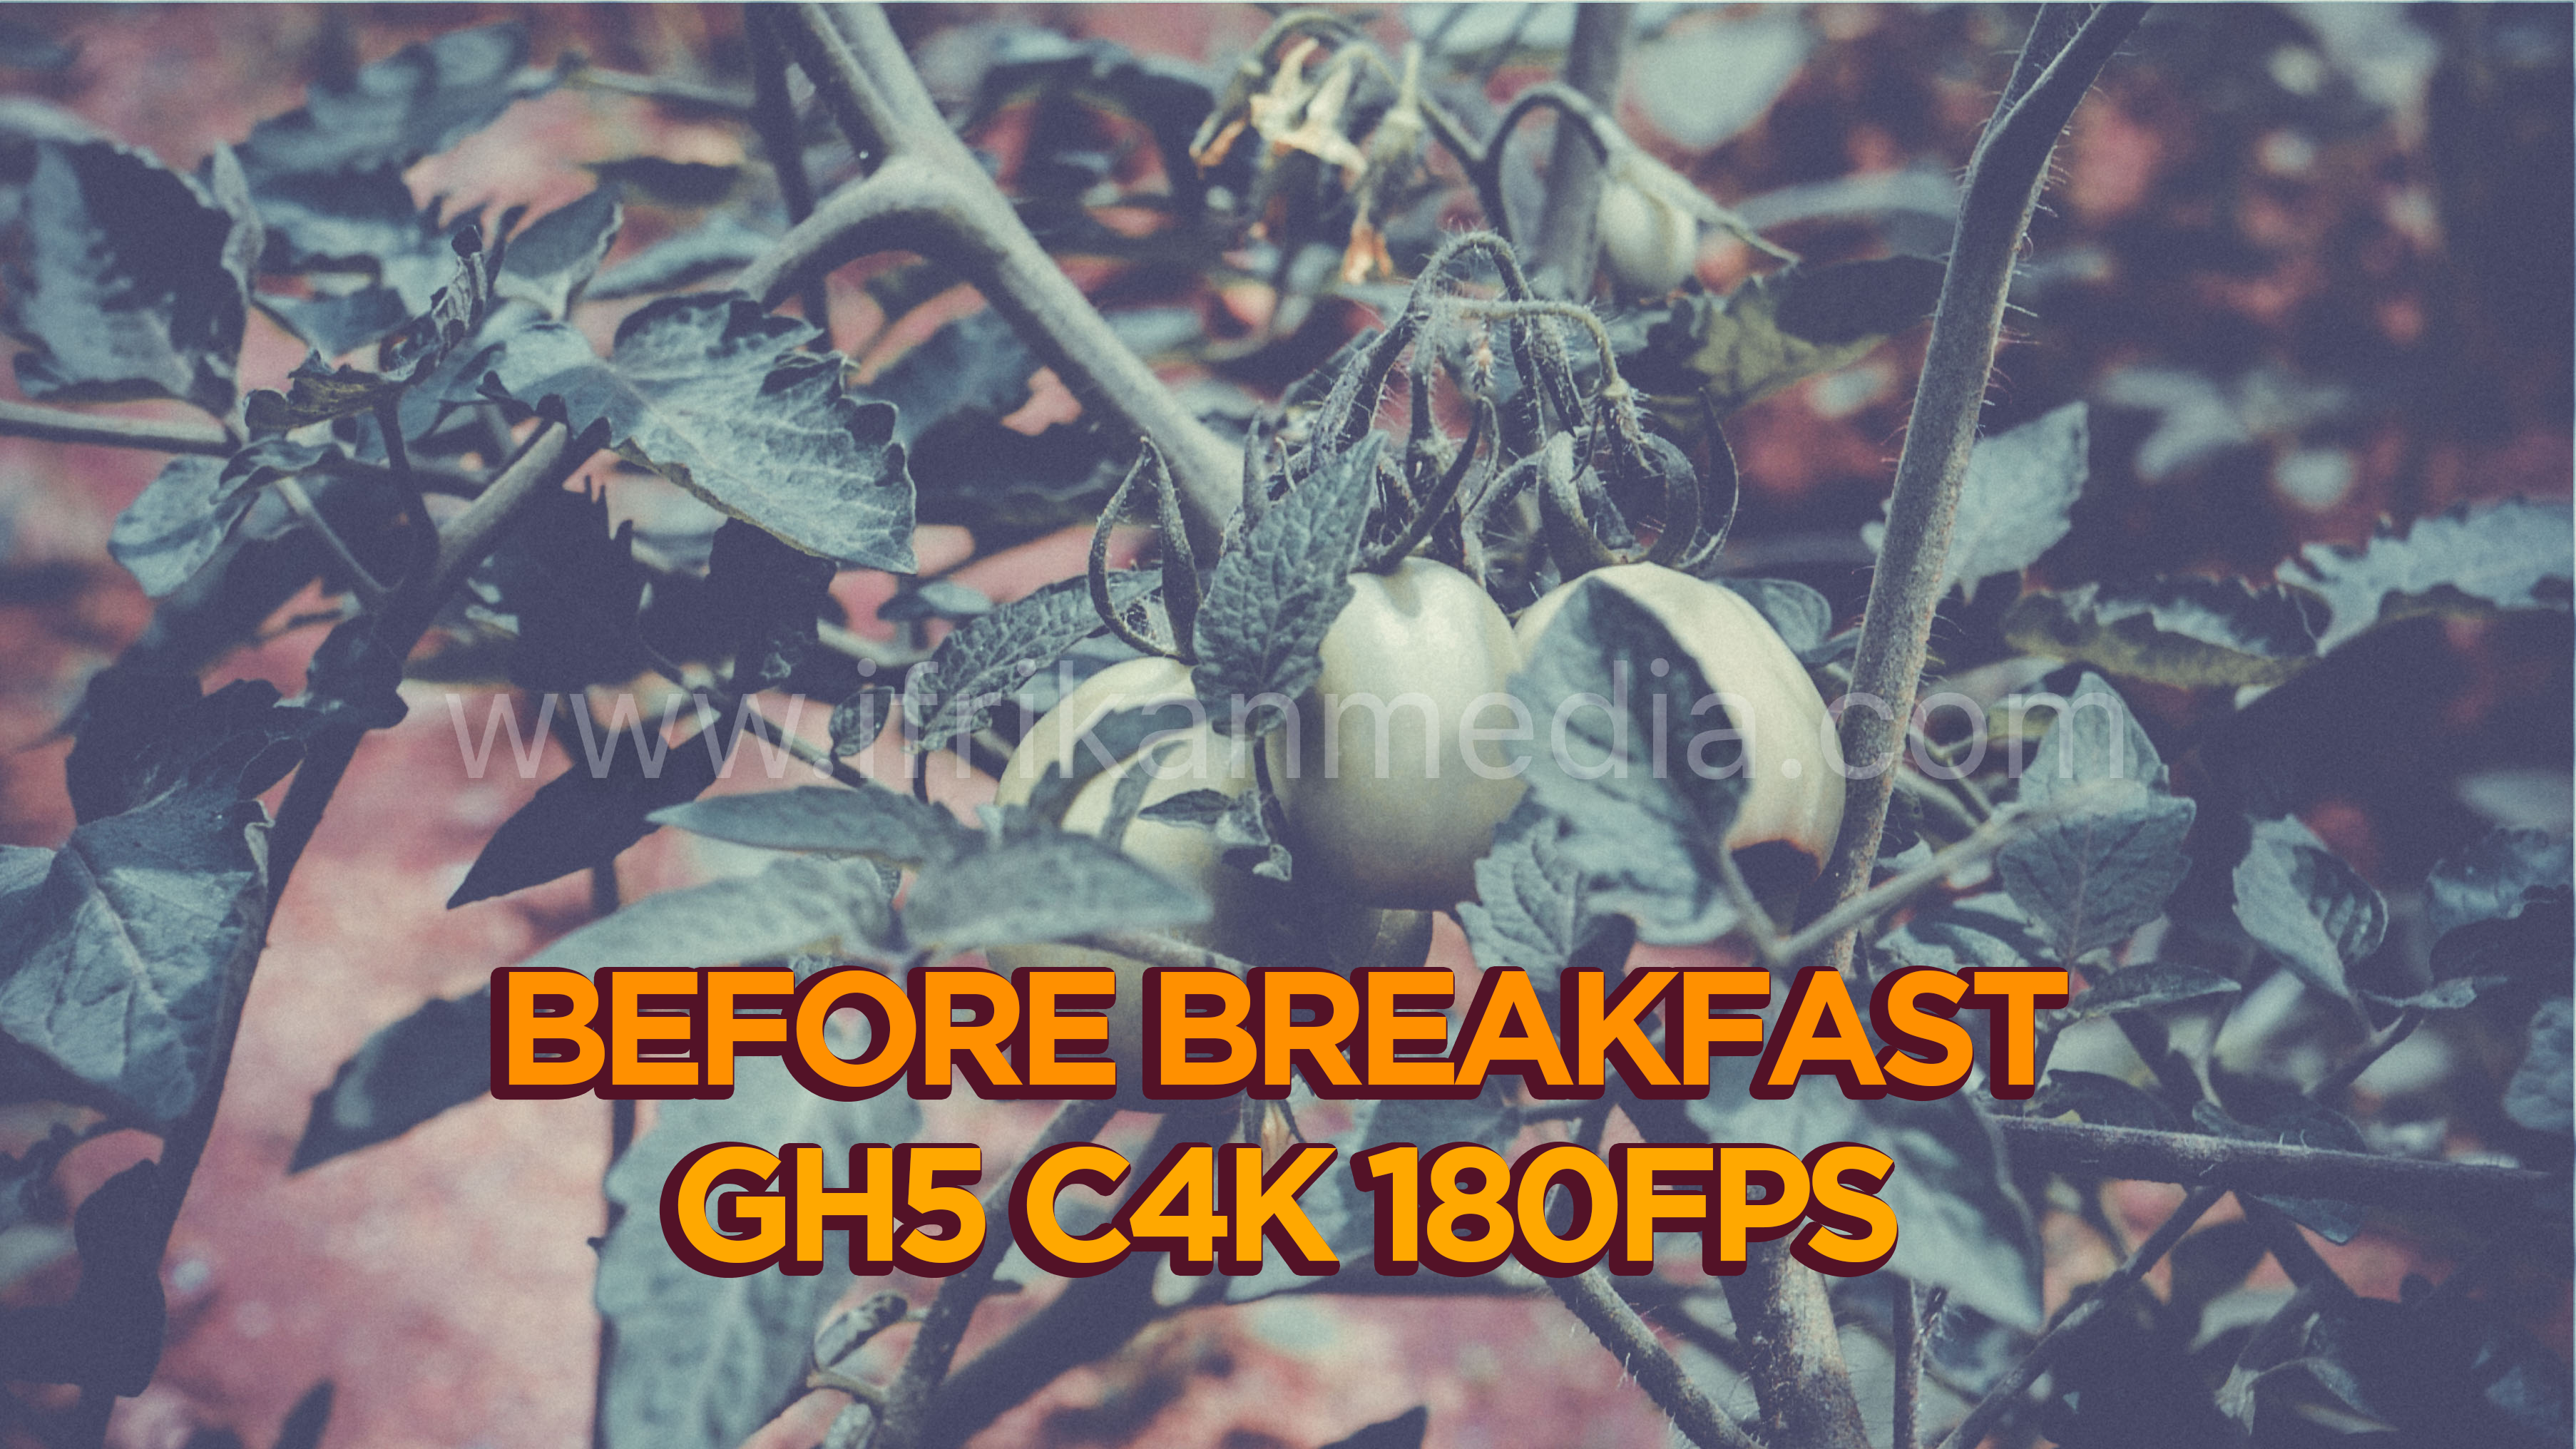 Before Breakfast – GH5 4K